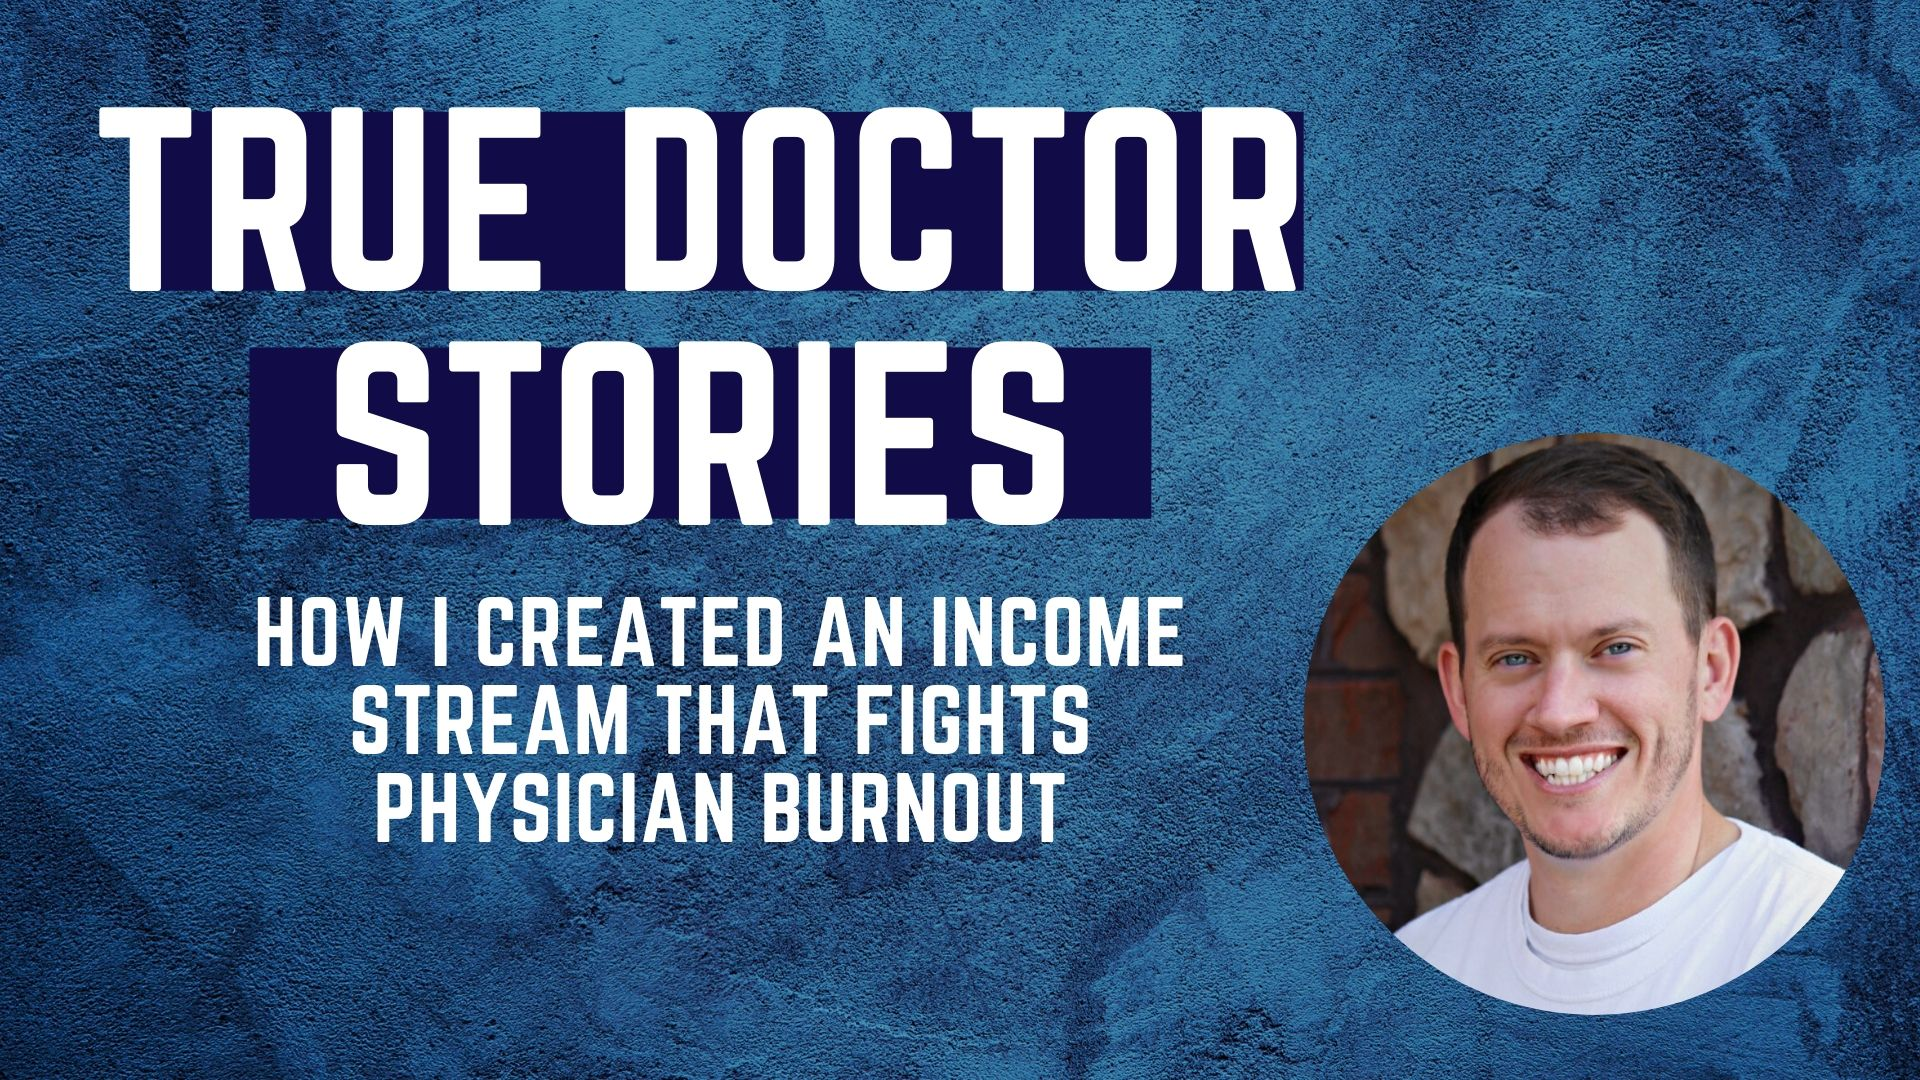 How I created an income stream that fights physician burnout. A q and a on Jimmy Turner, also known as The Physician Philosopher, as featured on Passive Income MD blog